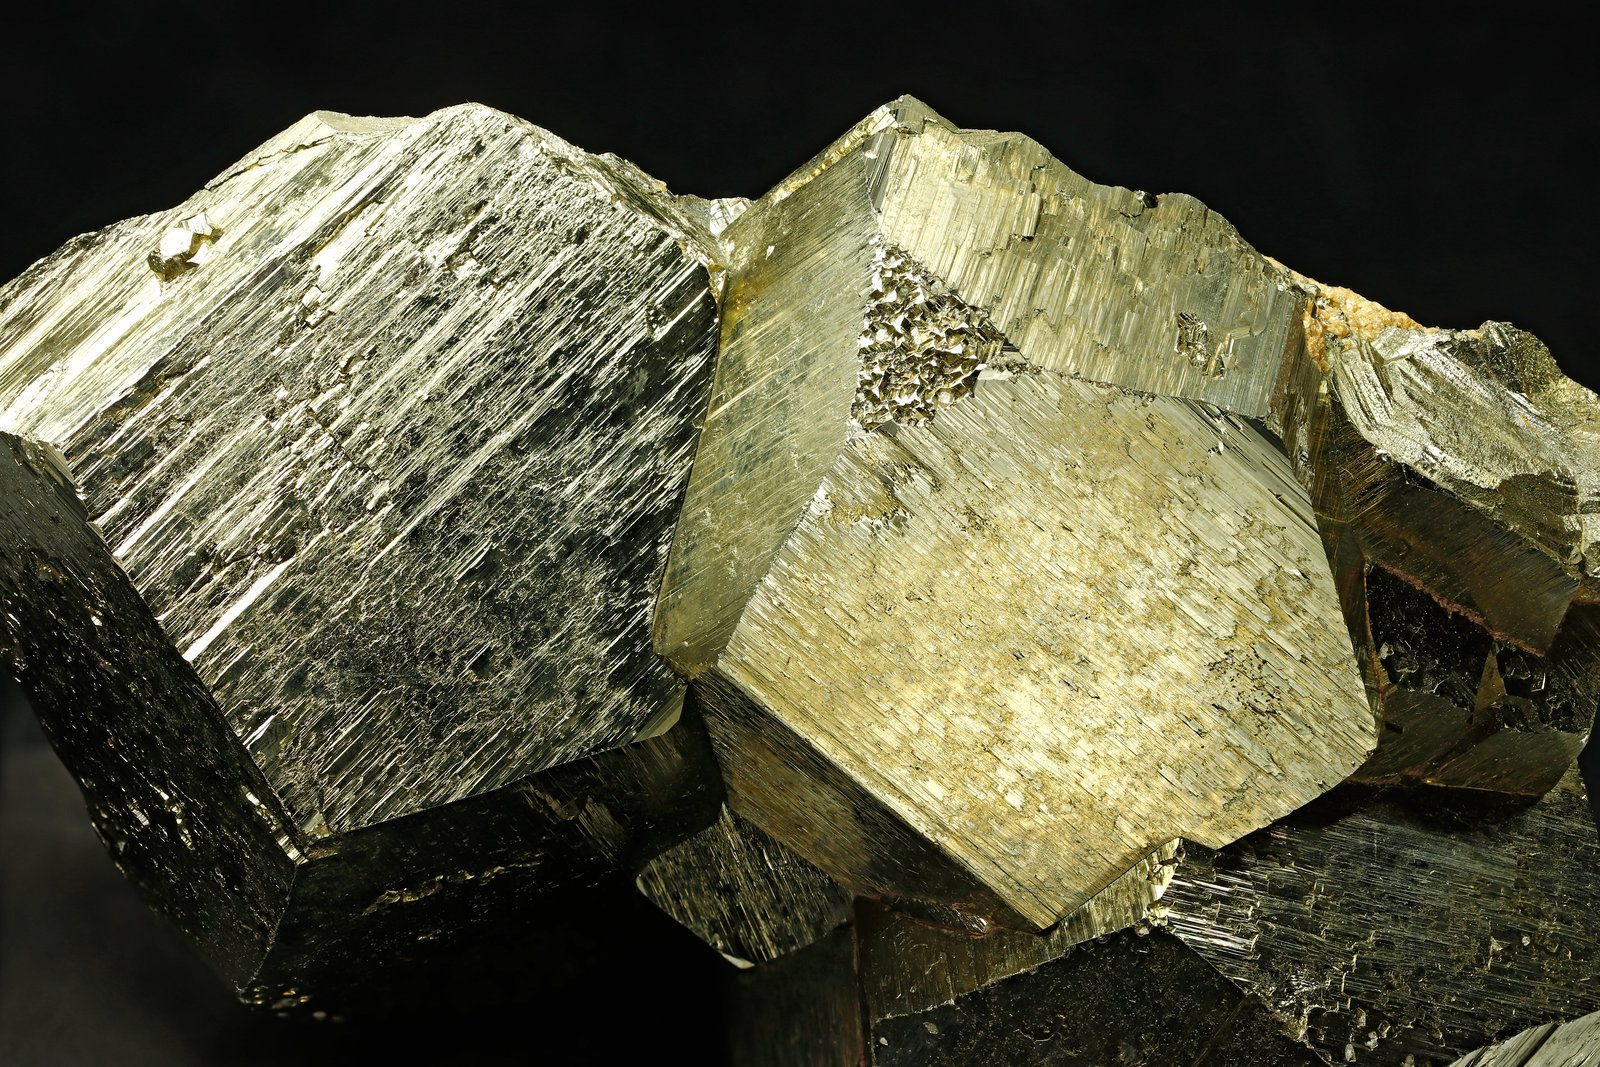 specimens/s_imagesAI9/Pyrite-MC56AI9_5861_d.jpg